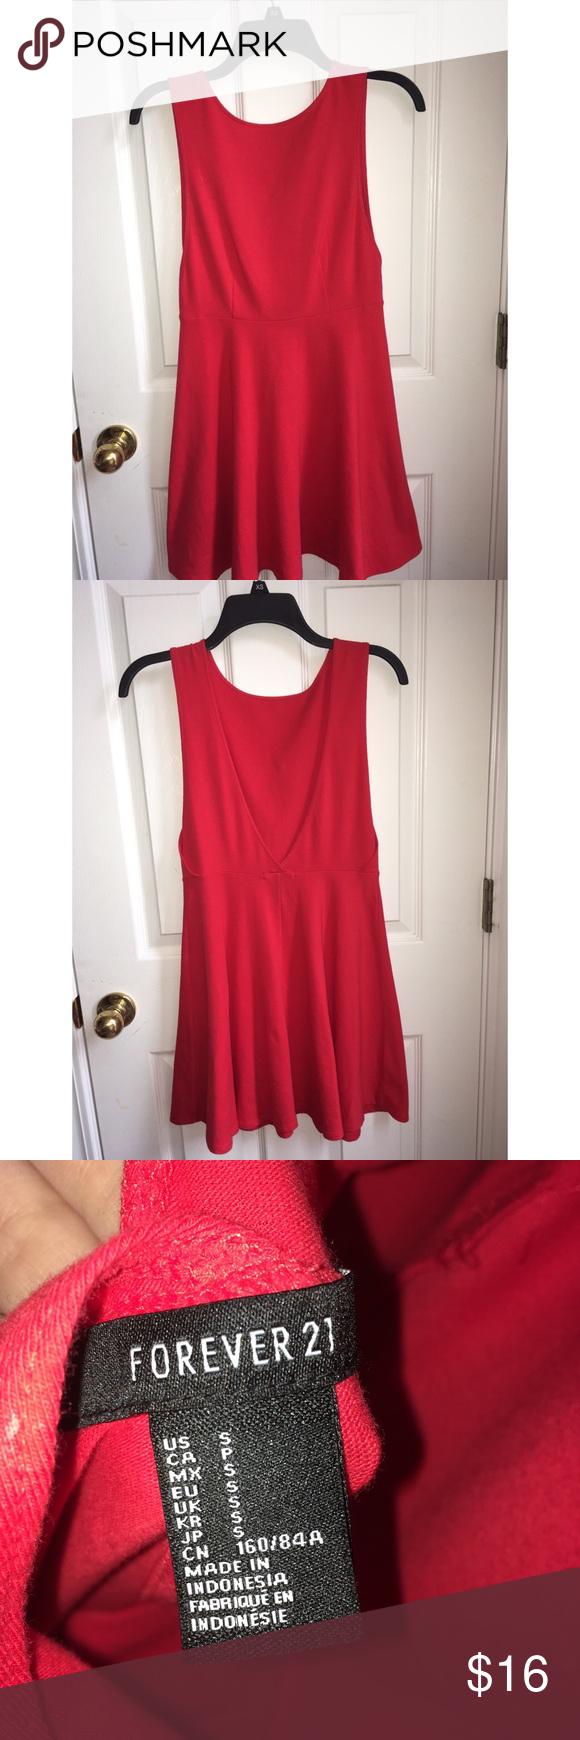 Forever red dress very cute and fun short dress dips to